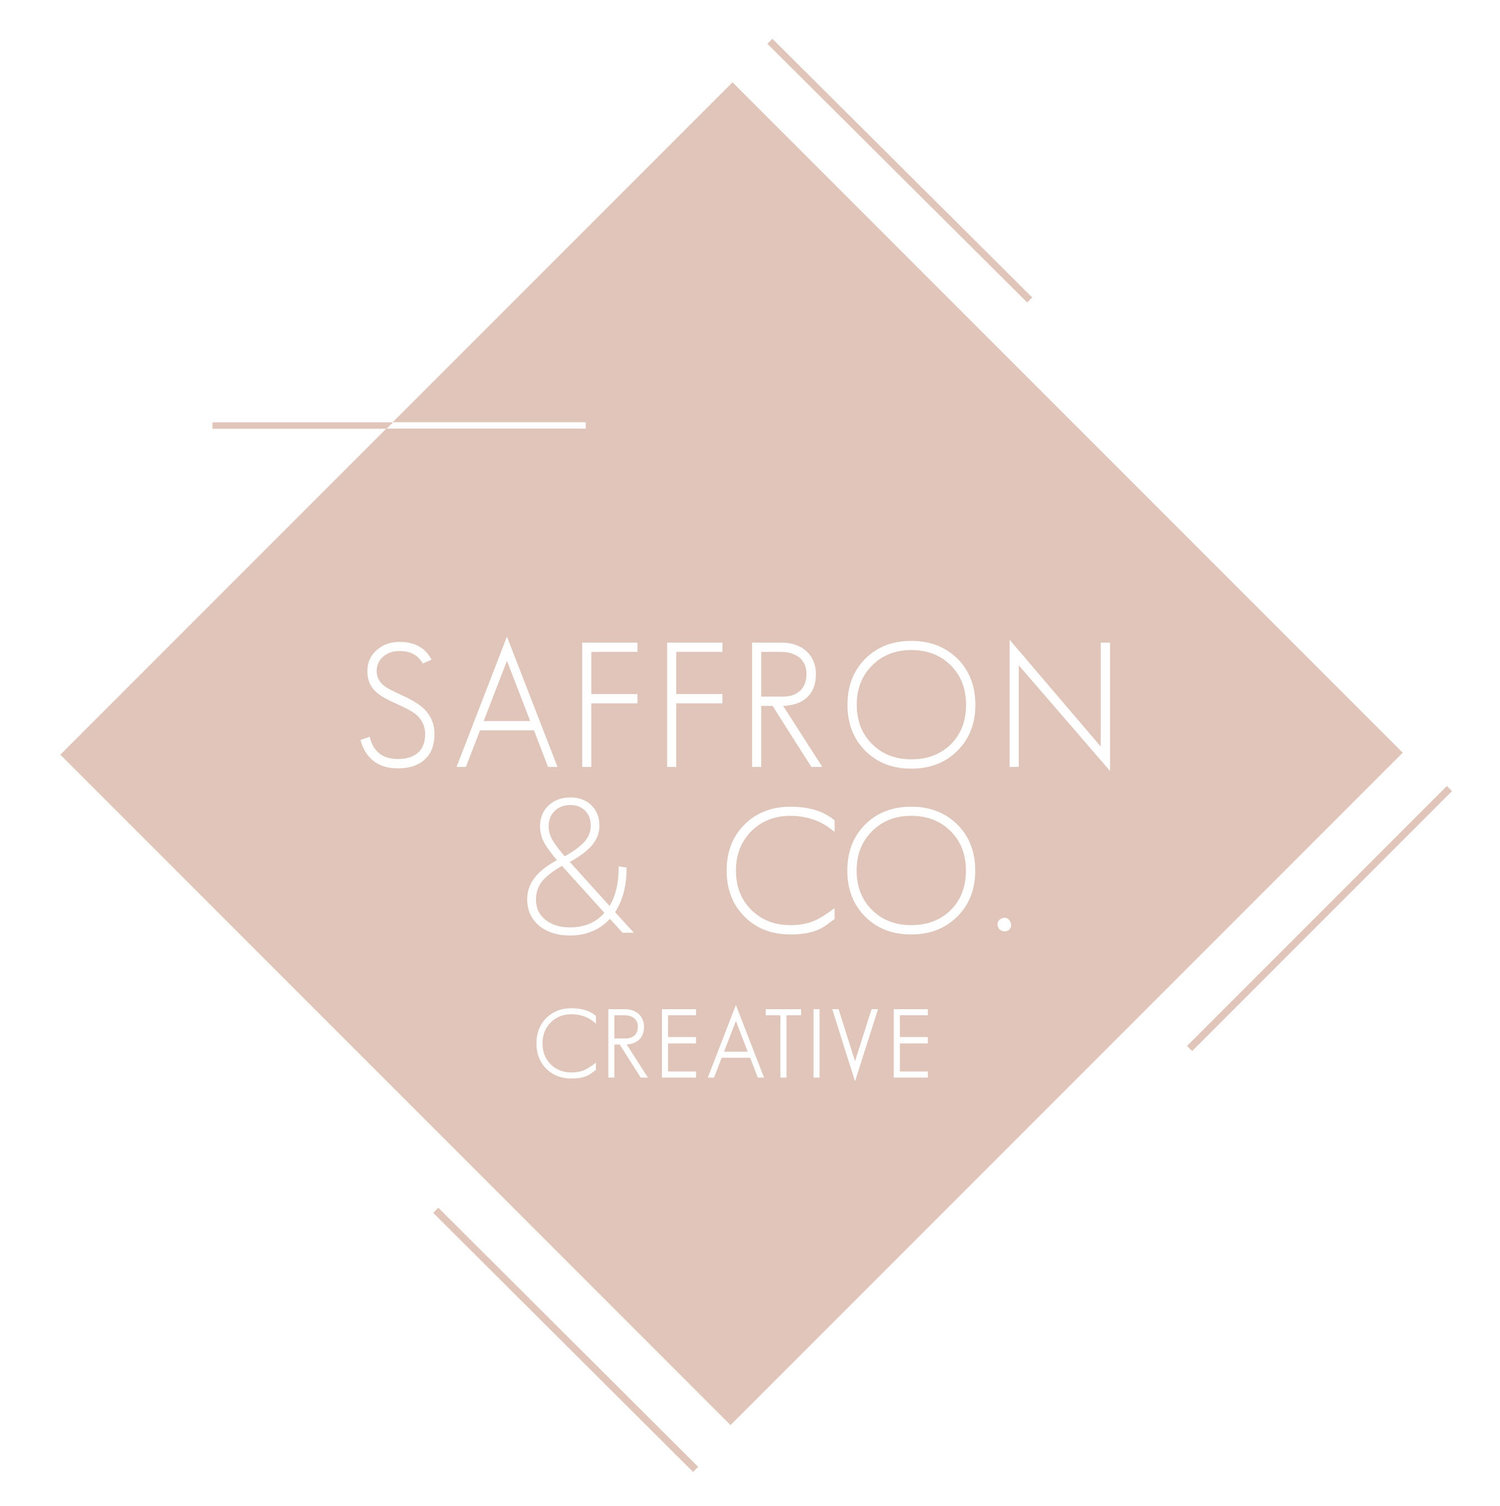 Saffron & Co. Creative